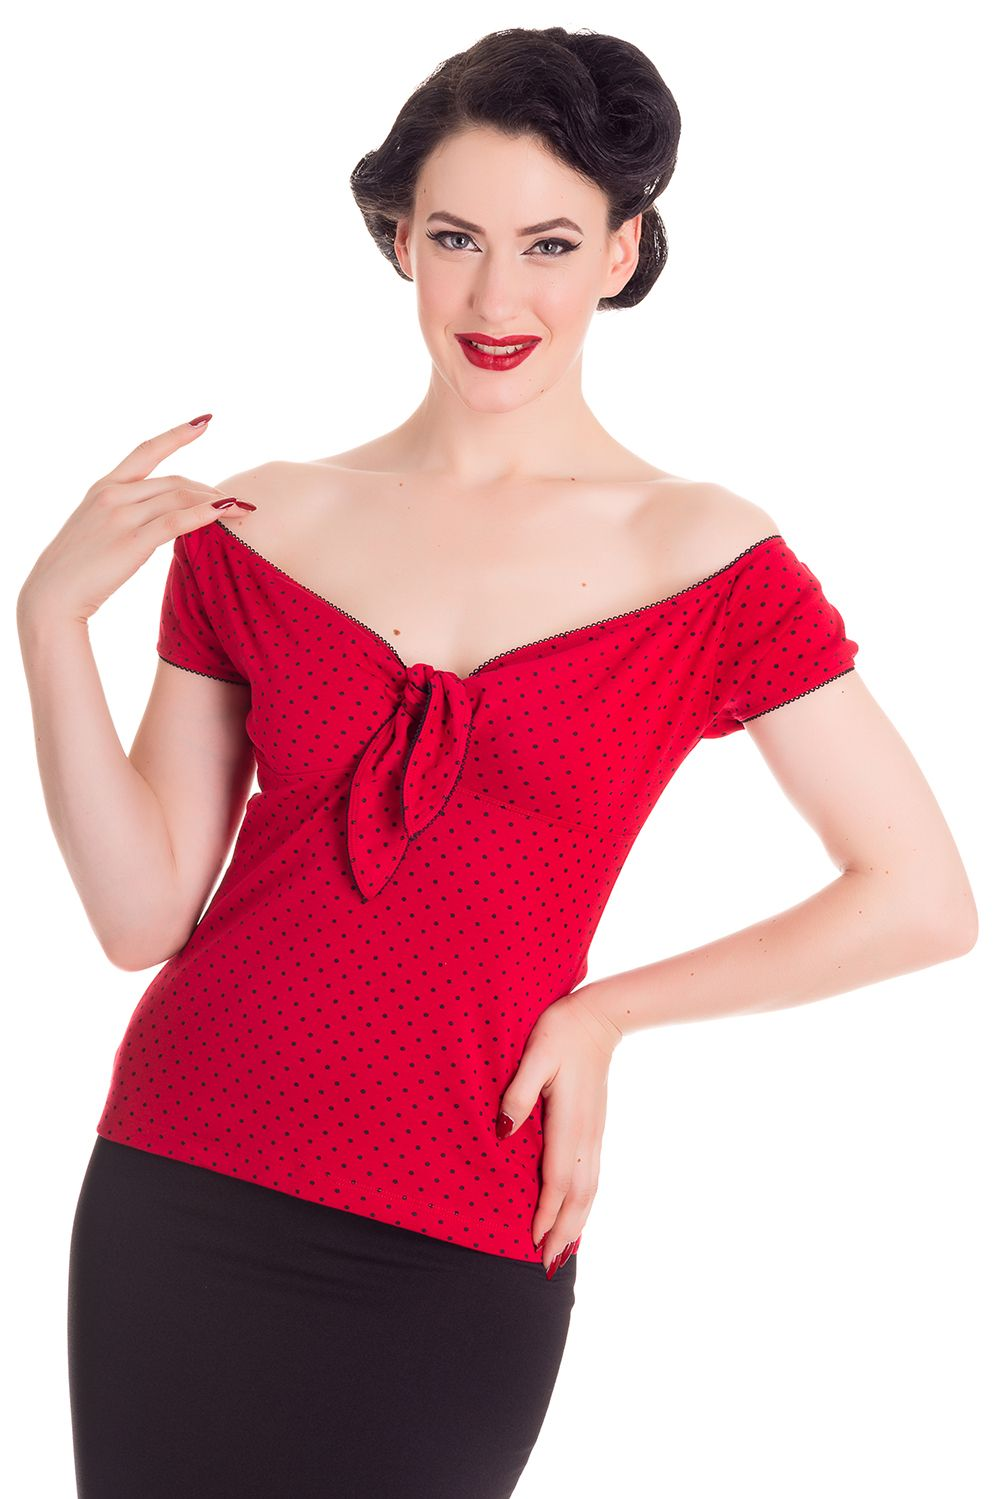 876e895fb229a Hell Bunny Cilla Red and black polka dot top.